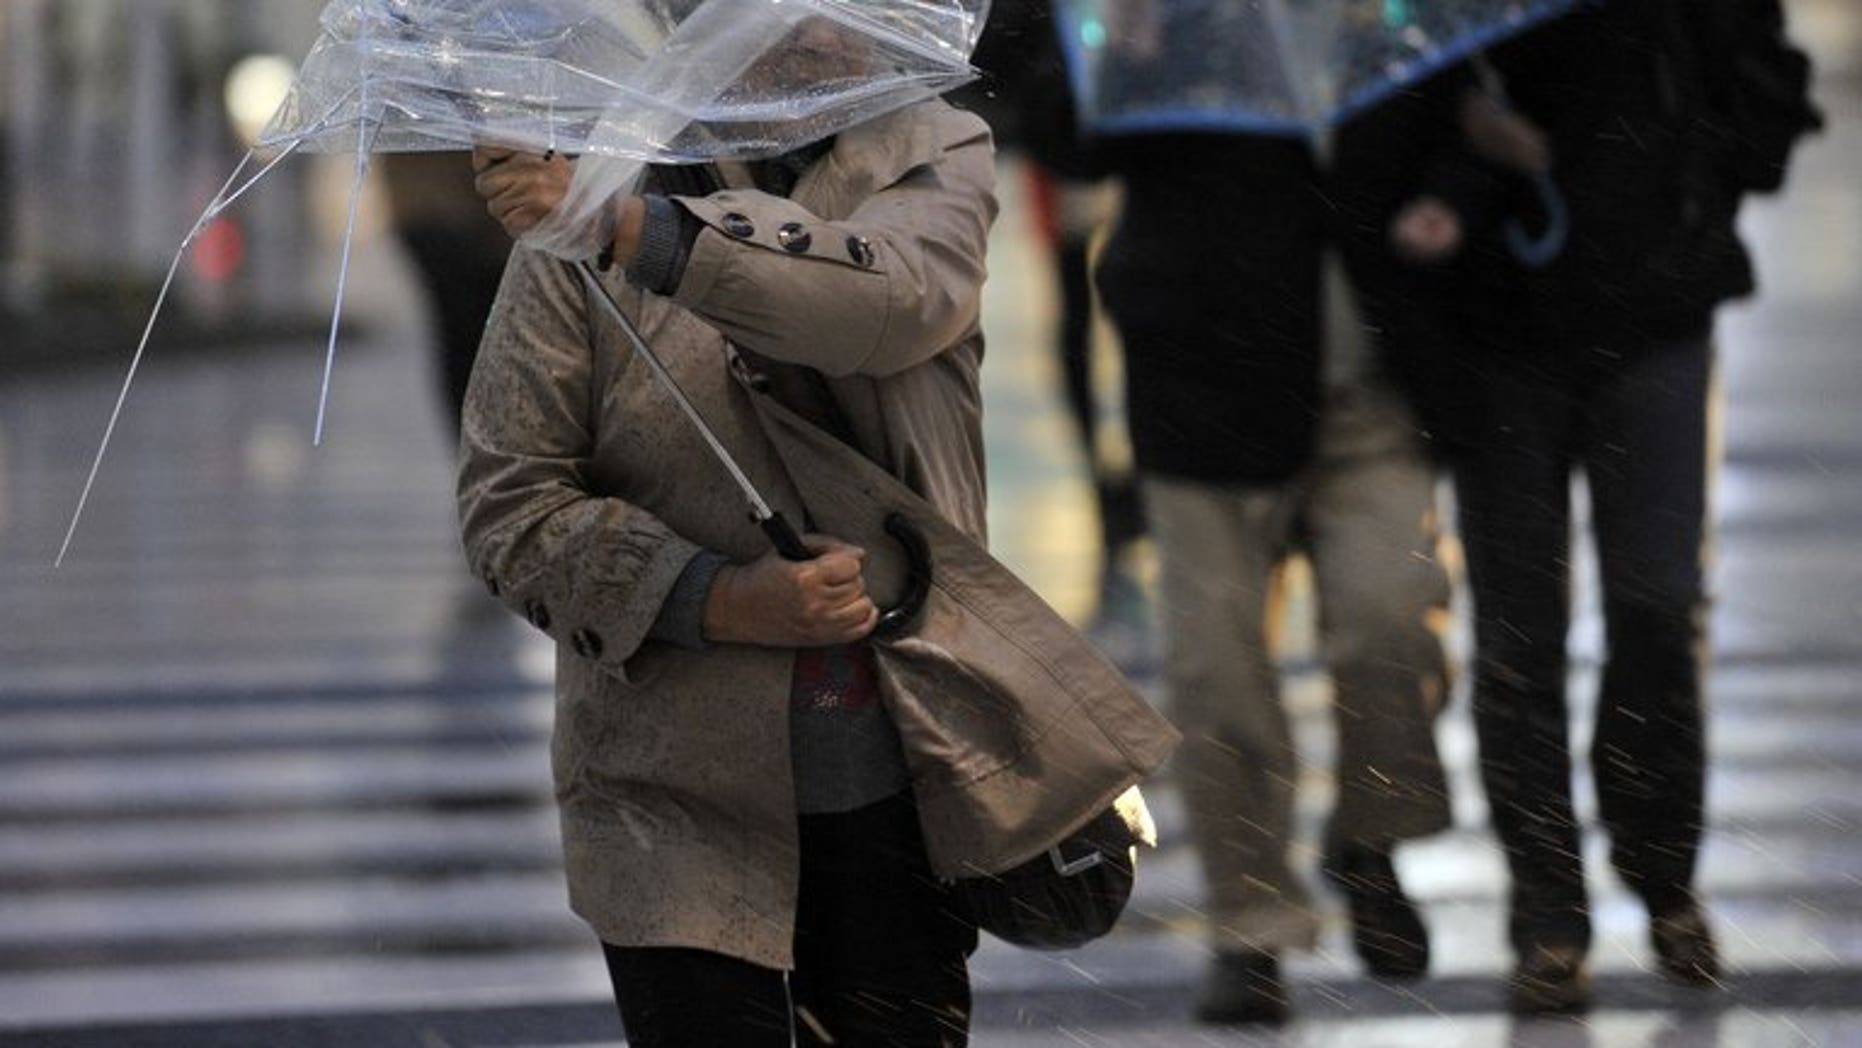 This file photo shows pedestrians struggling amid strong wind in Tokyo, on April 3, 2012. Heavy rains lashed Japan over the weekend, leaving one person dead and two missing, the government said on Monday as it issued a severe storm warning.